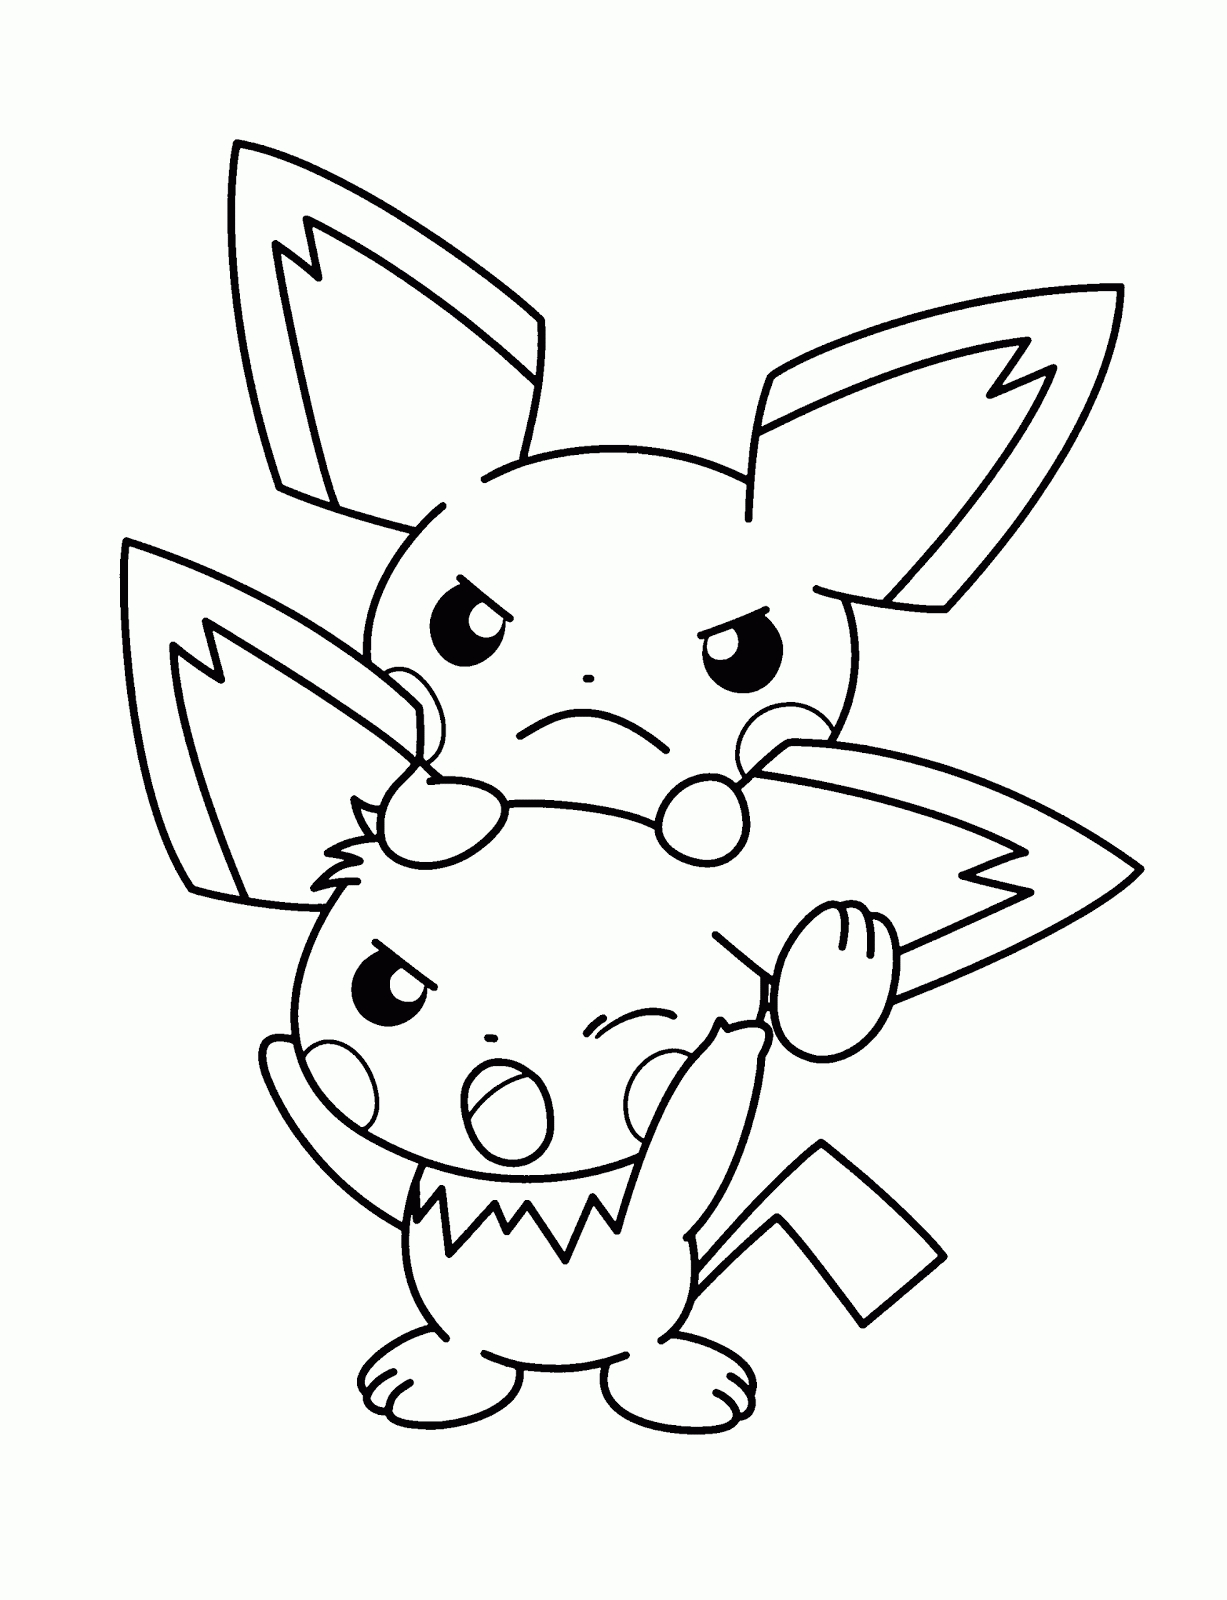 pokemon coloring pages - pokemon coloring pages pikachu